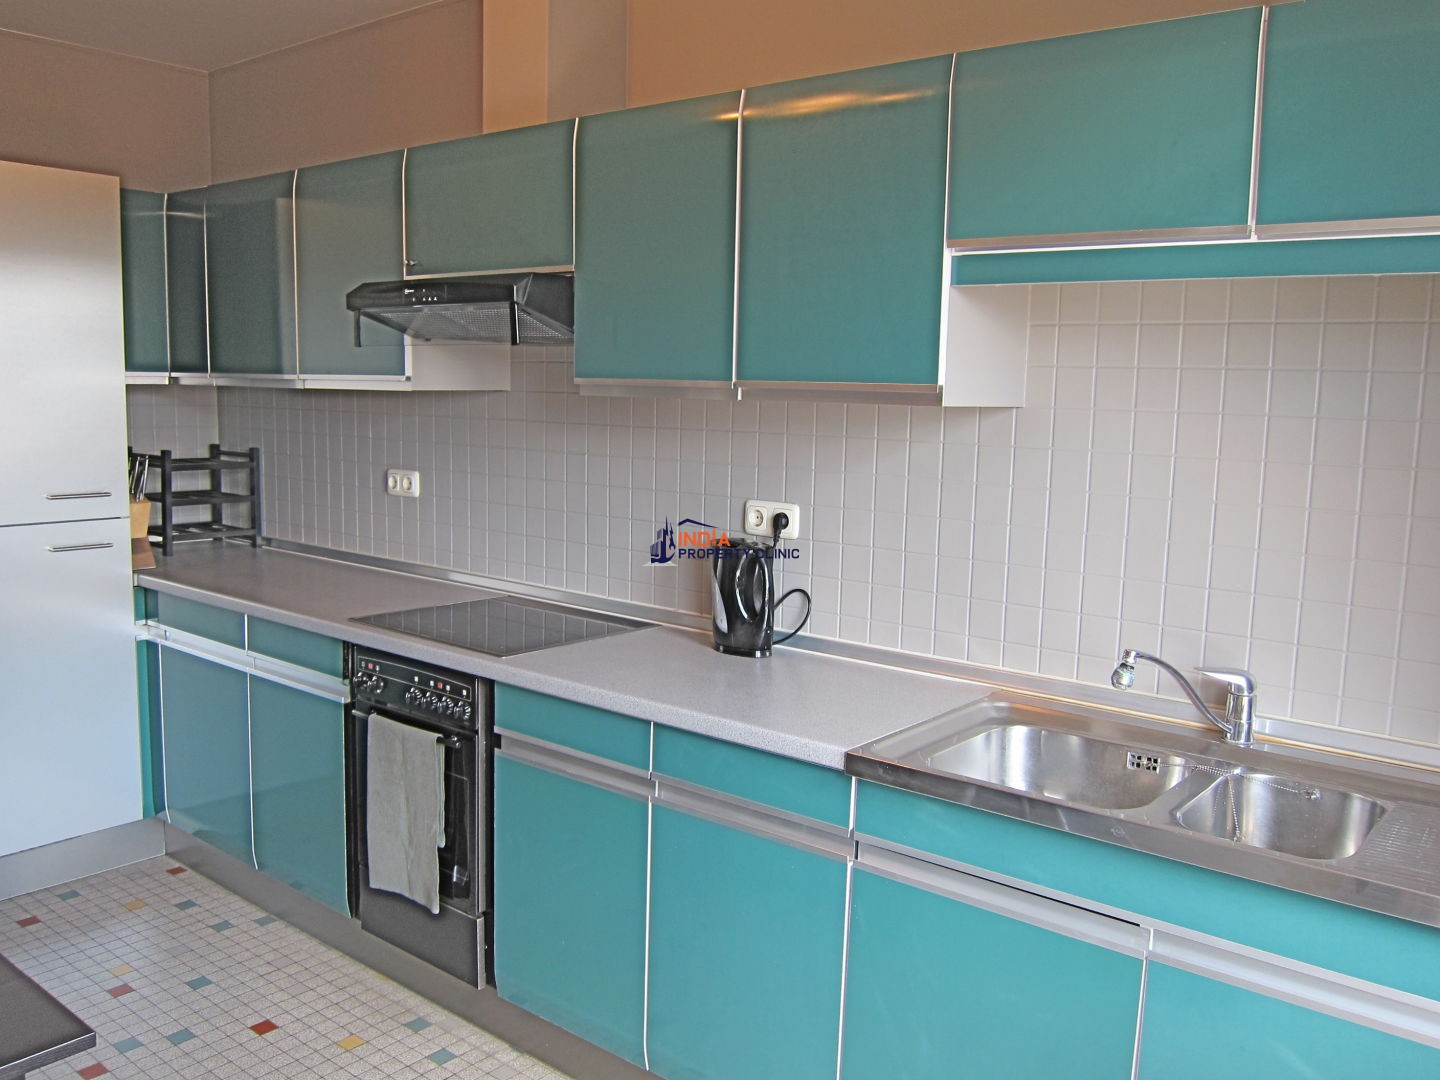 Apartment For Rent in Bonnevoie Luxembourg